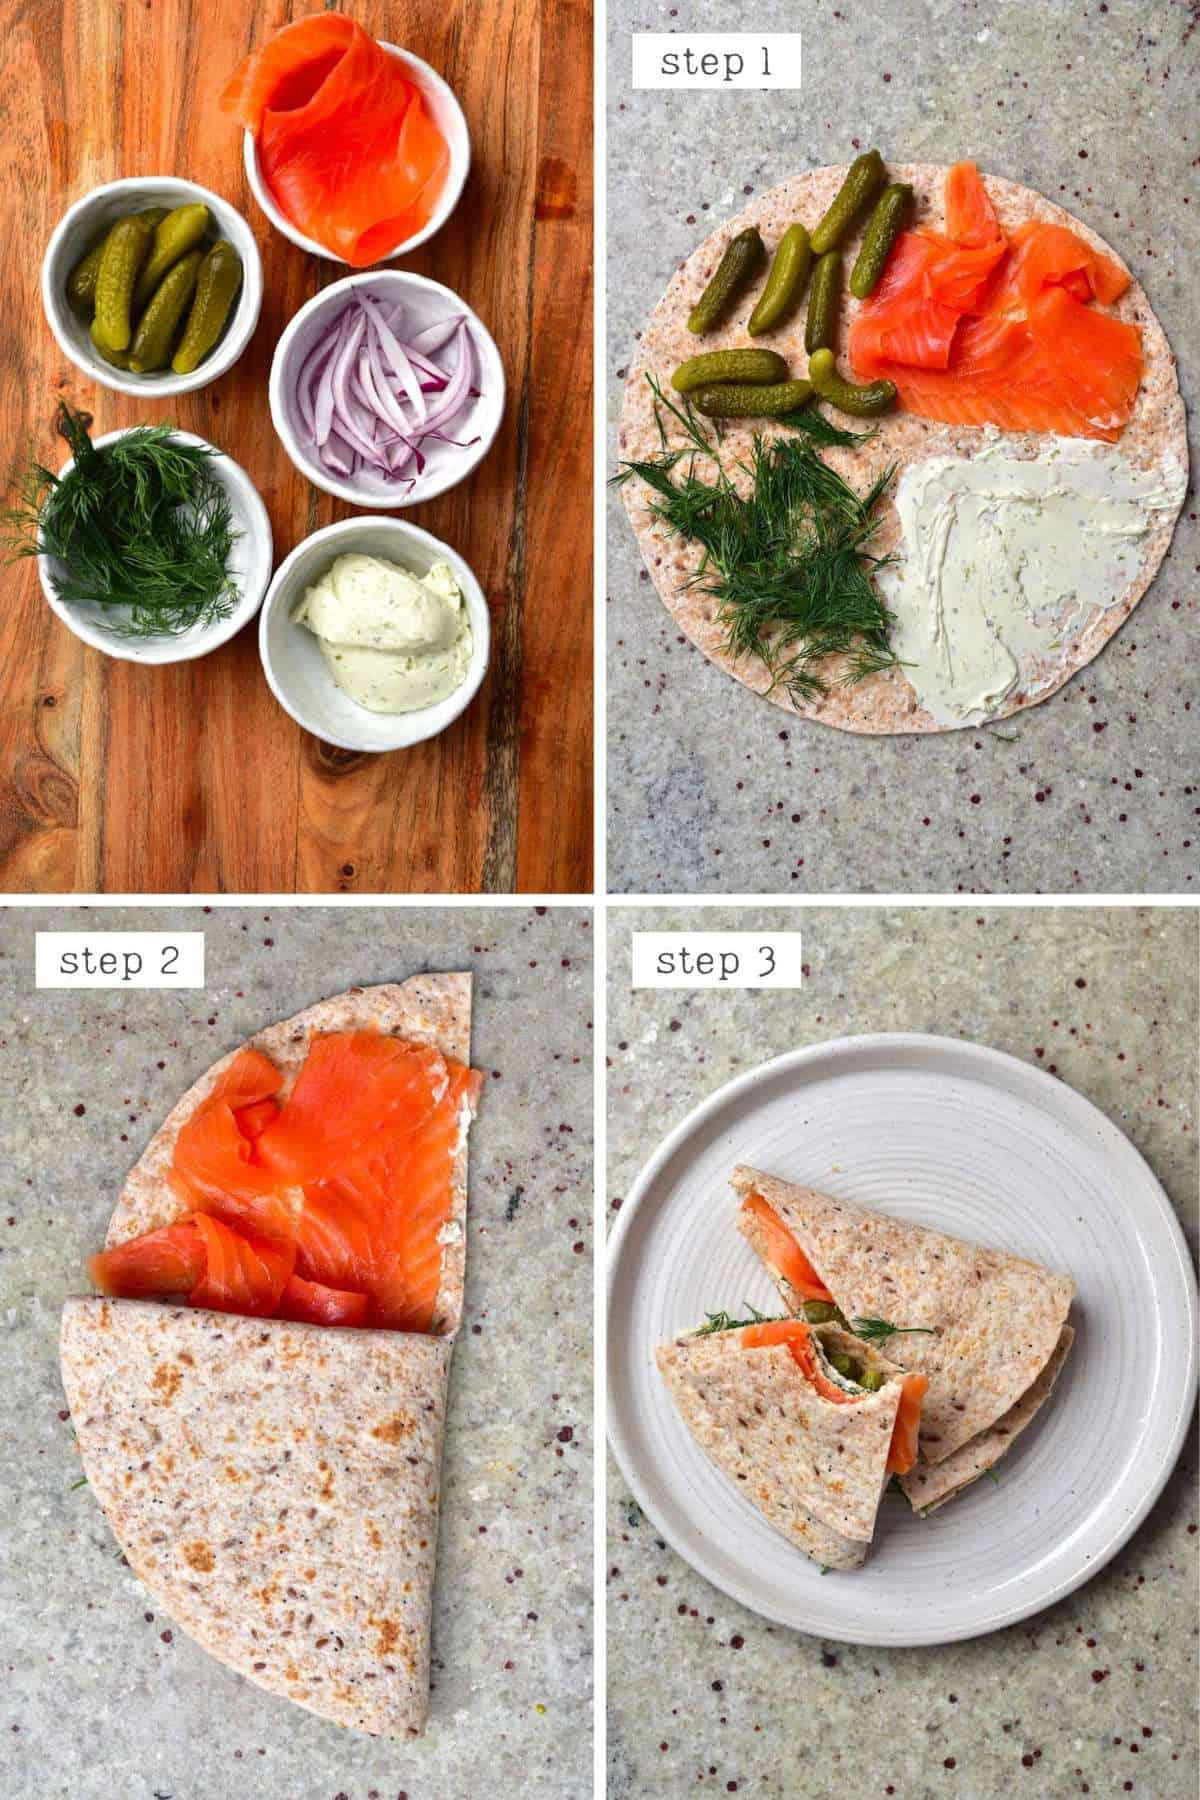 Steps for making a salmon & cream cheese tortilla - Norway tortilla